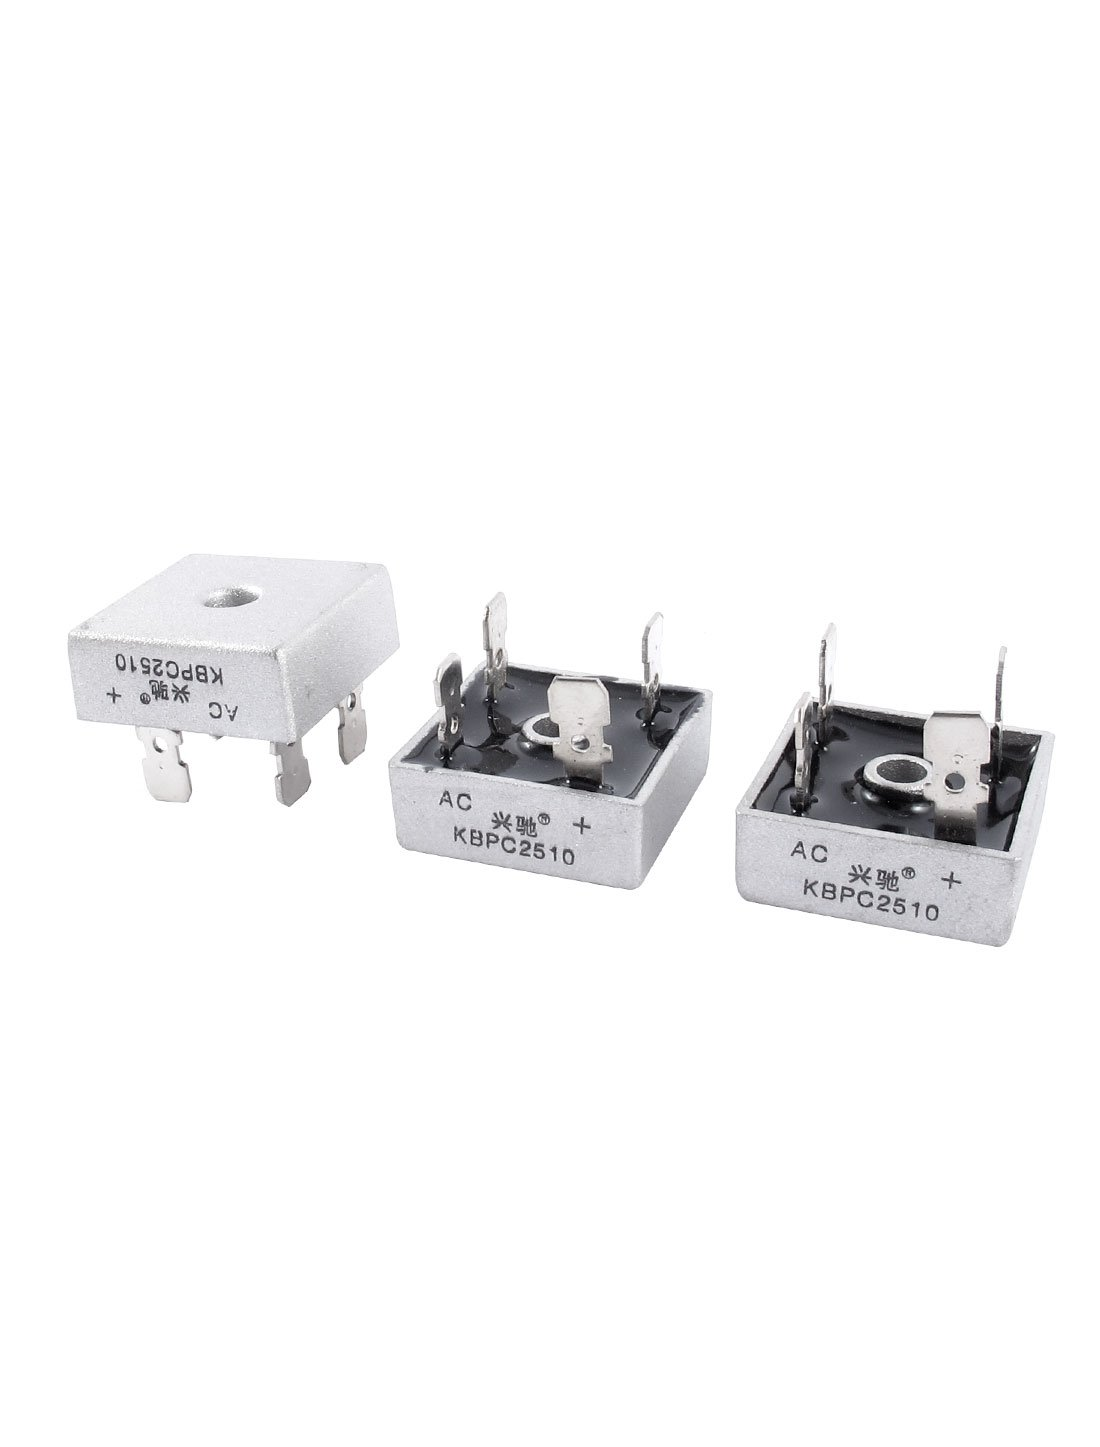 Aexit PCB KBPC2510 Interfaces 1KV 25A Single Phase Diode Bridge Rectifier 2 Radio Frequency Transceivers Pcs Gray